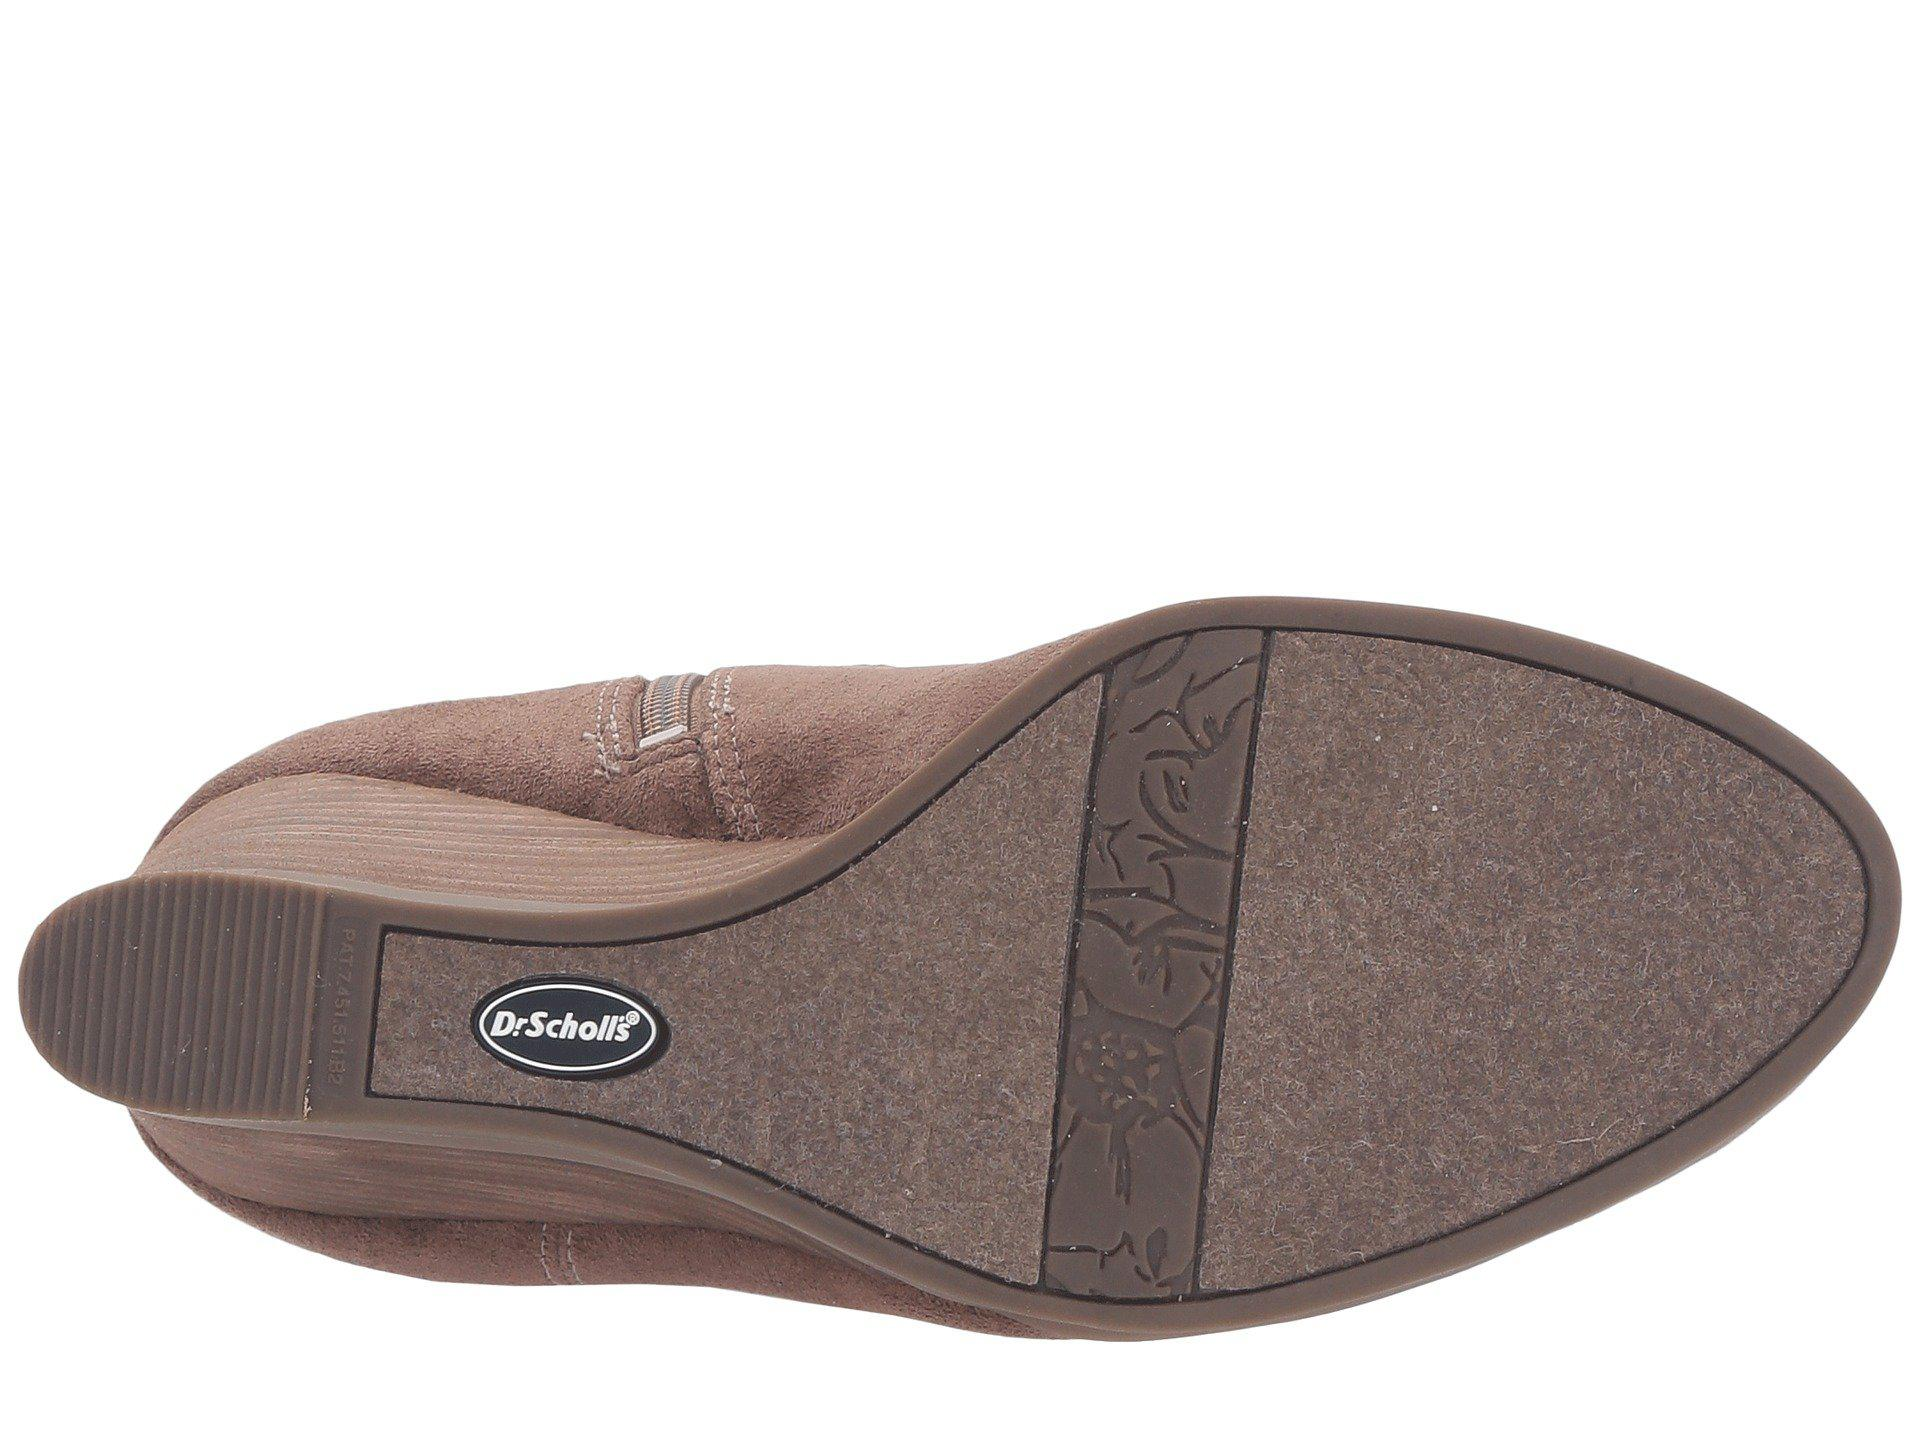 9acf57aaa389 Lyst - Dr. Scholls Poe Wide Calf in Brown